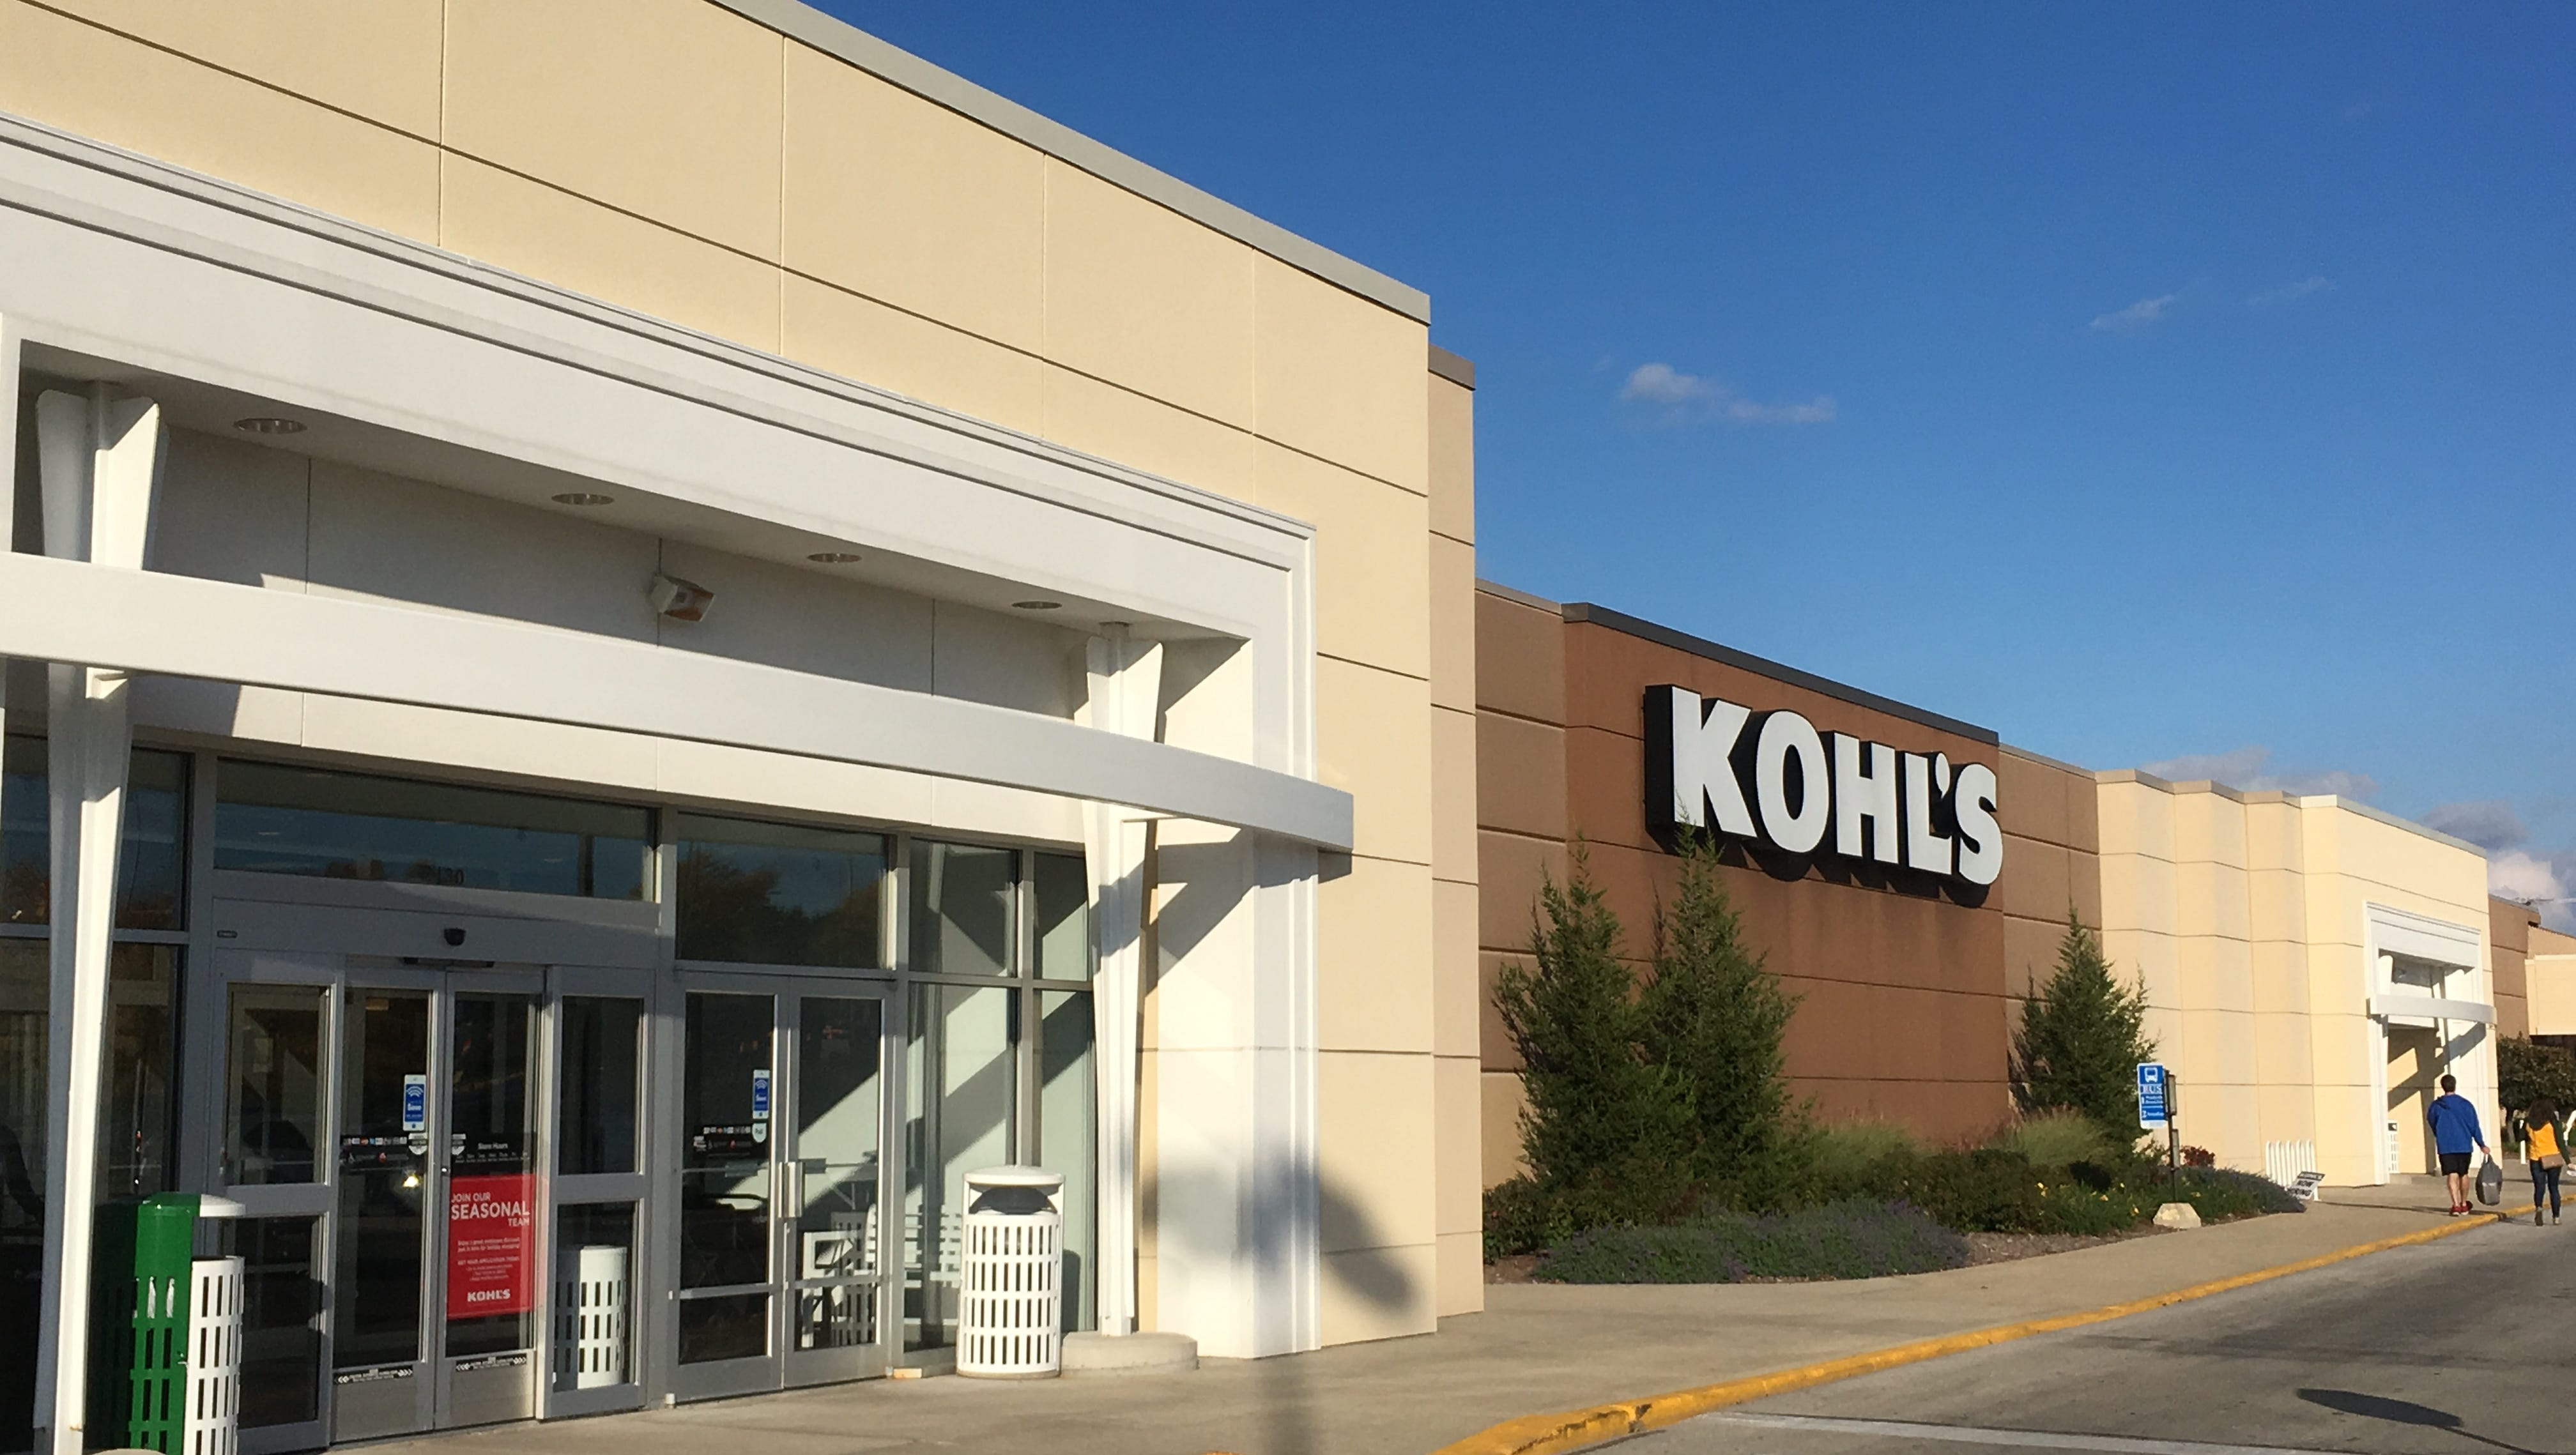 Kohl S Will Give 5 Million To Children S Hospital Of Wisconsin